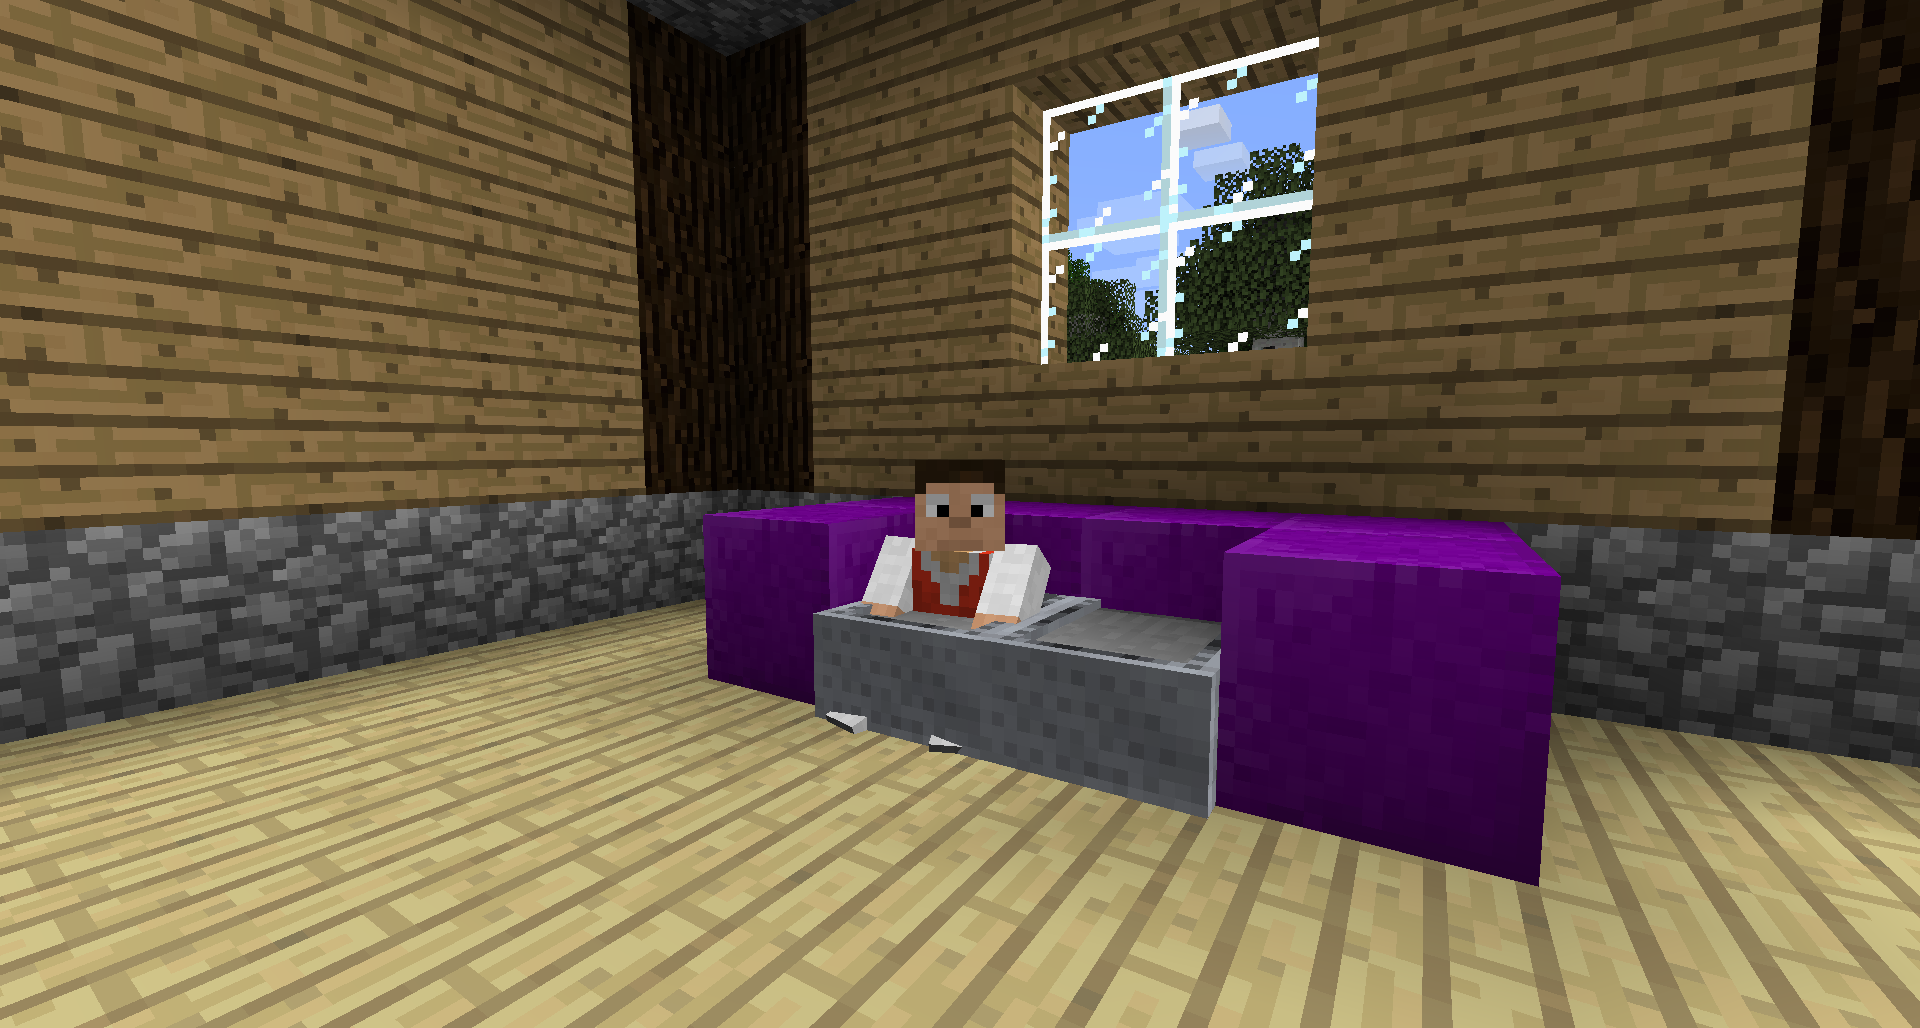 How To Make A Working Chair In Minecraft Minecraft What To Build Work Chair How To Make Sofa